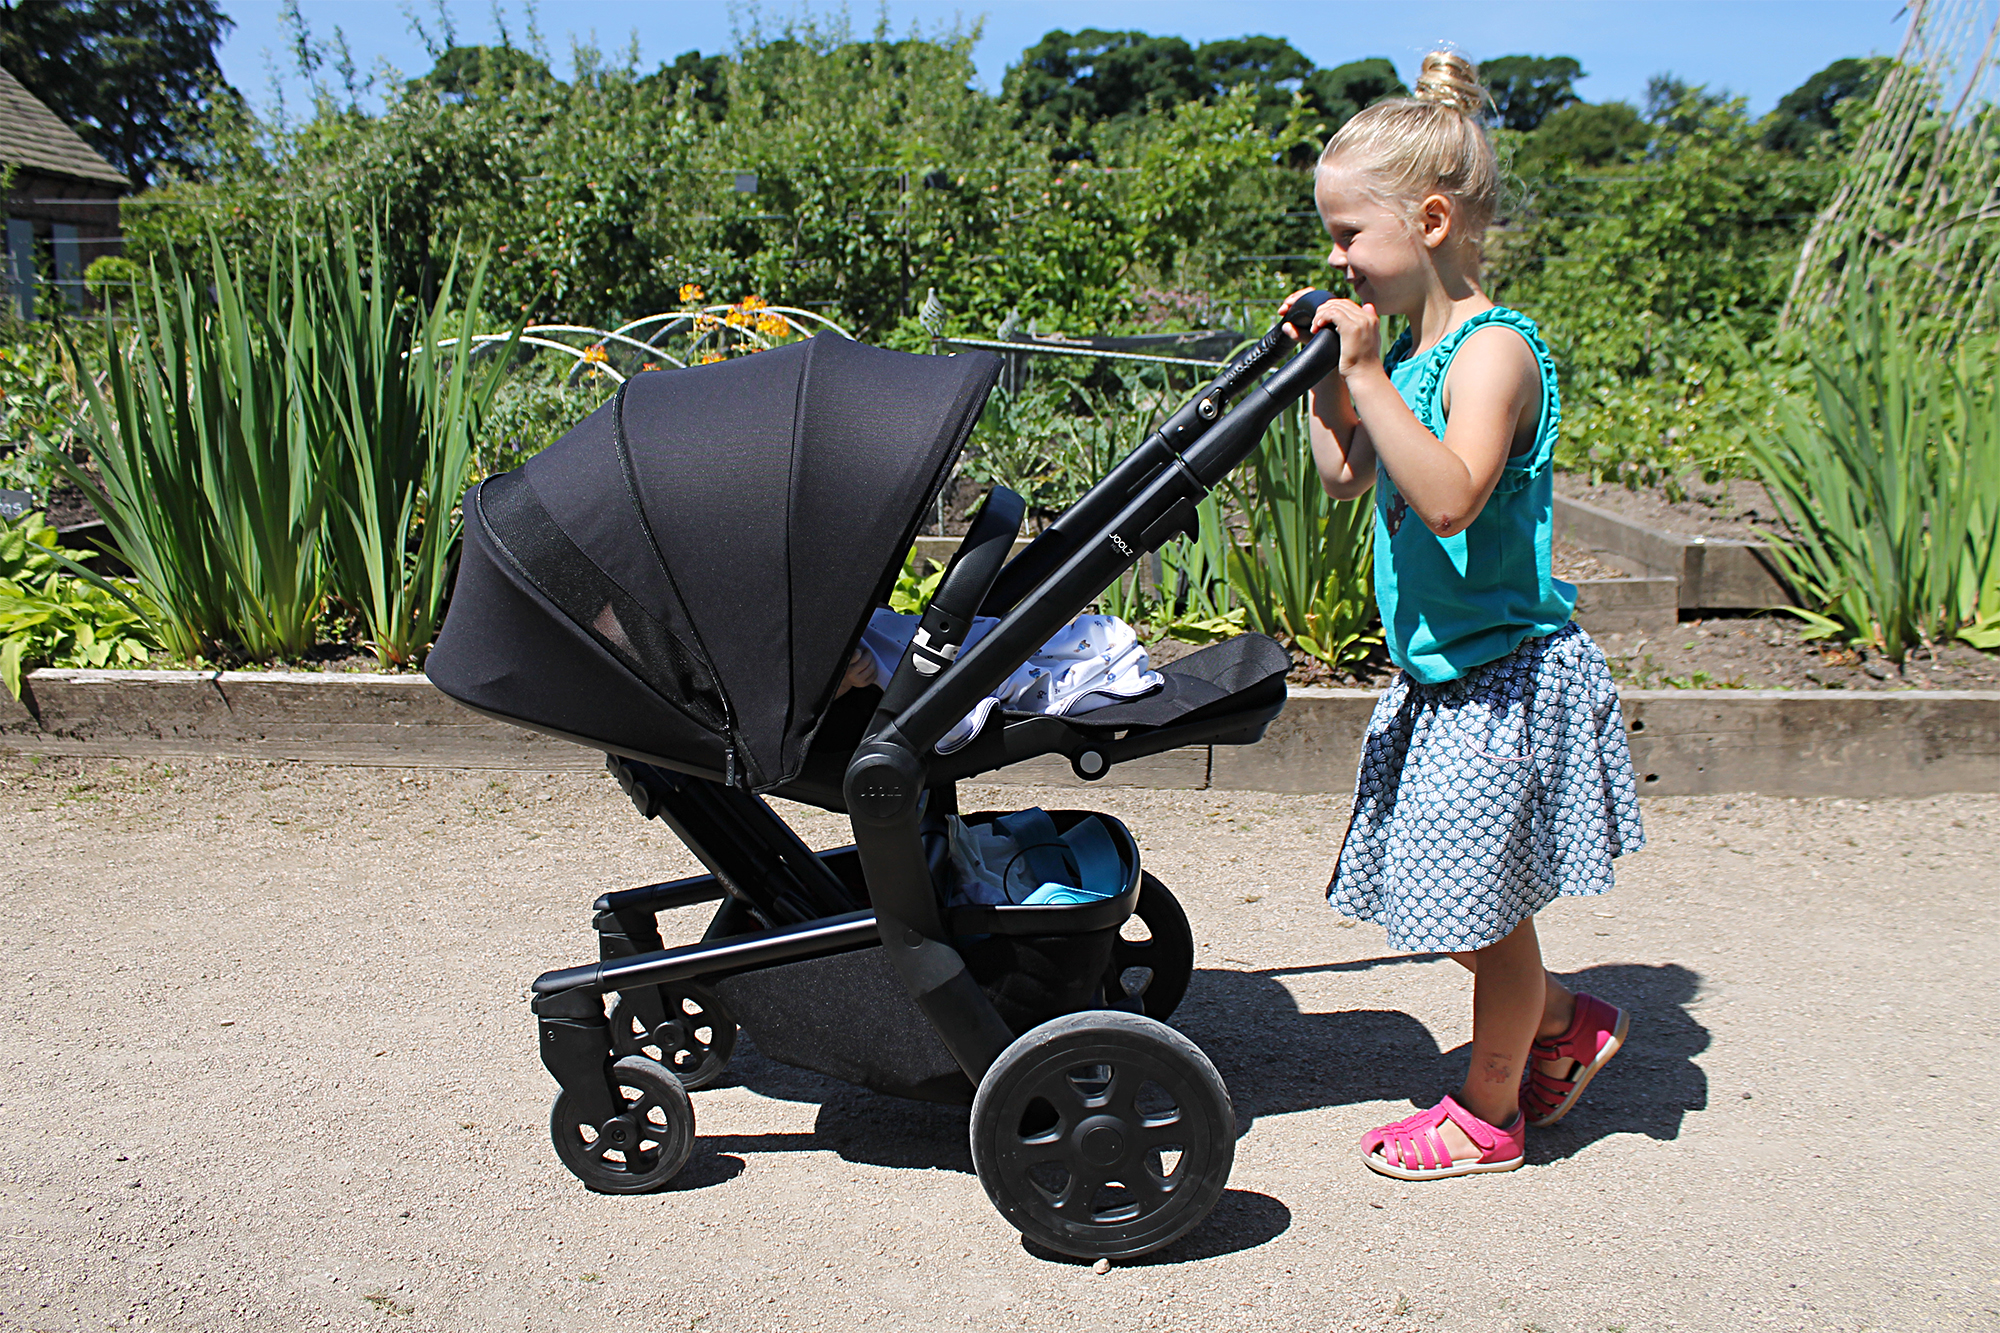 Bugaboo Cameleon 3 Oder Joolz Why We Are Cruising Around In The New Joolz Hub Lets Talk